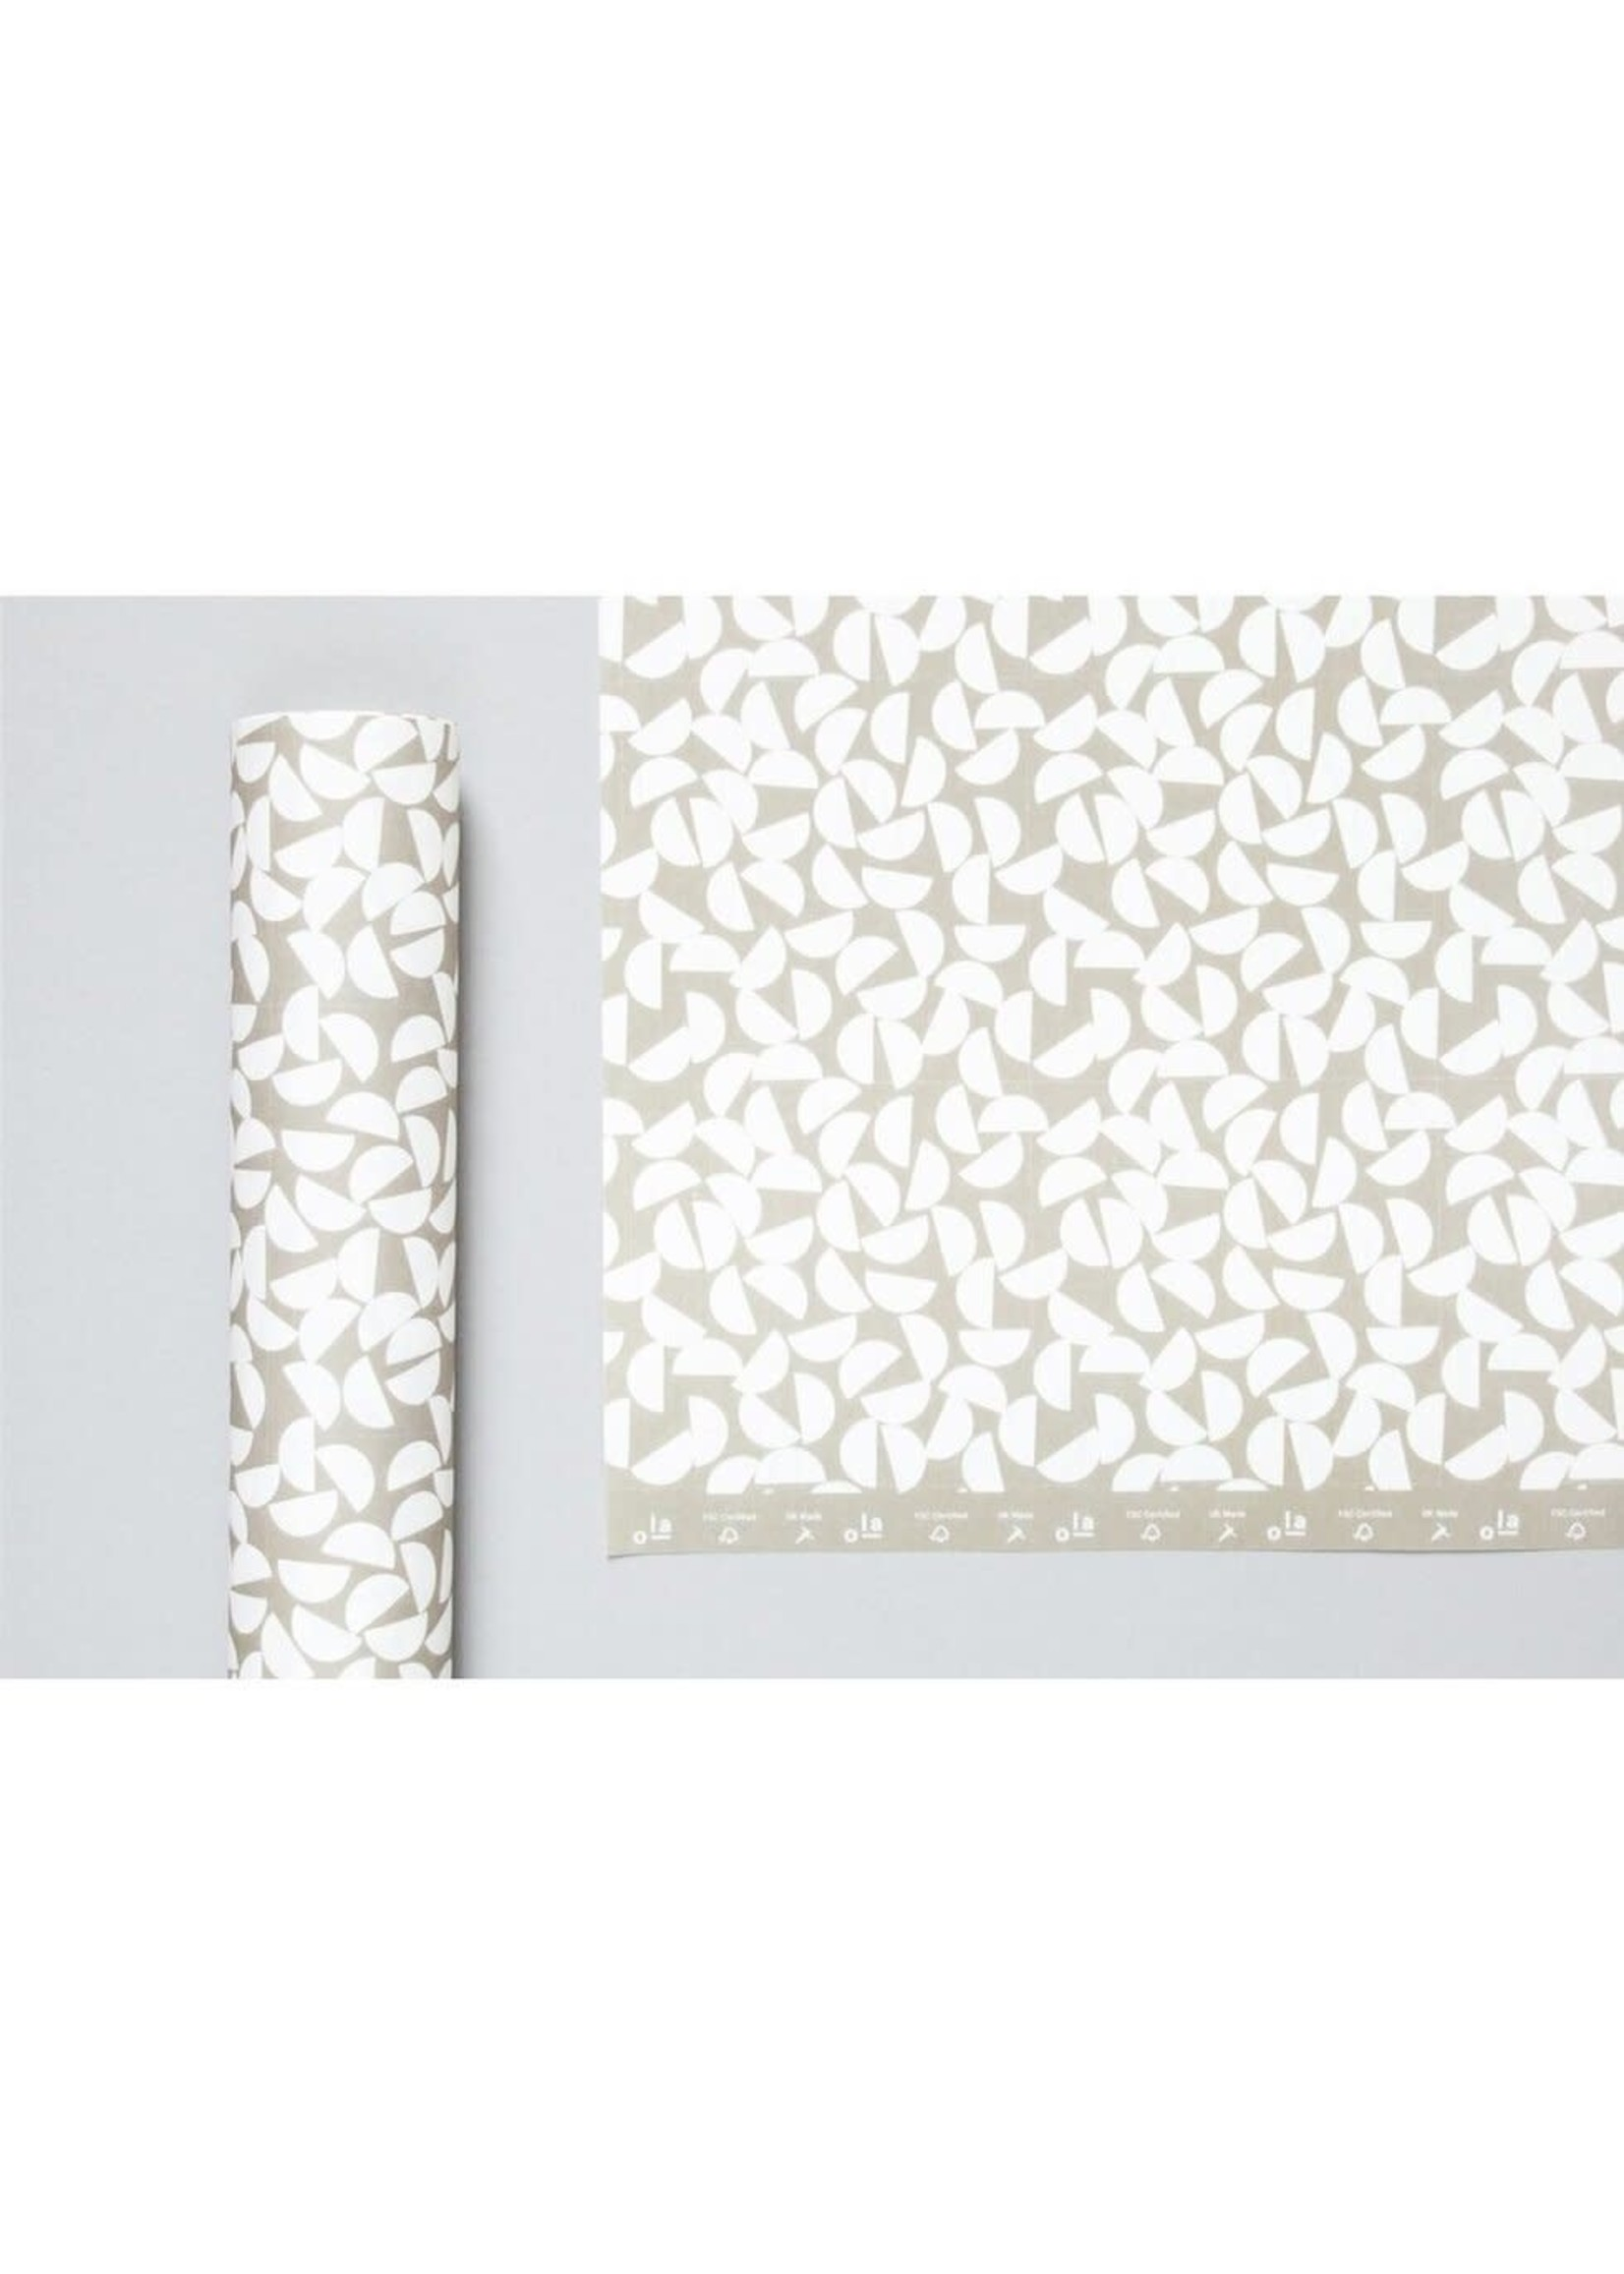 Ola Ola Patterned Papers: Maze Print, Sand